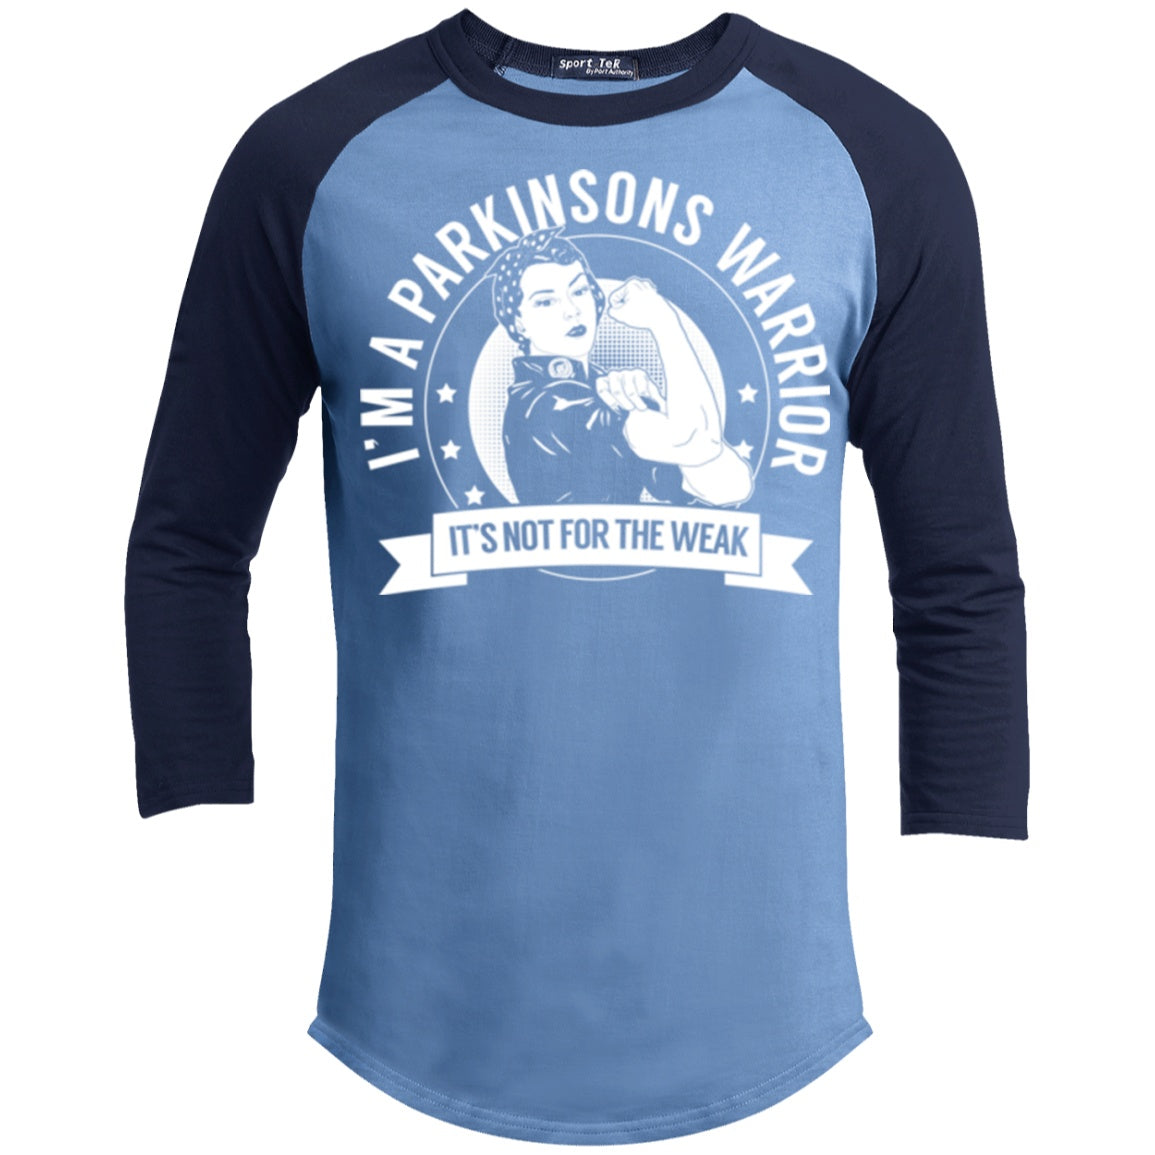 Parkinsons Warrior Not For The Weak Baseball Shirt - The Unchargeables